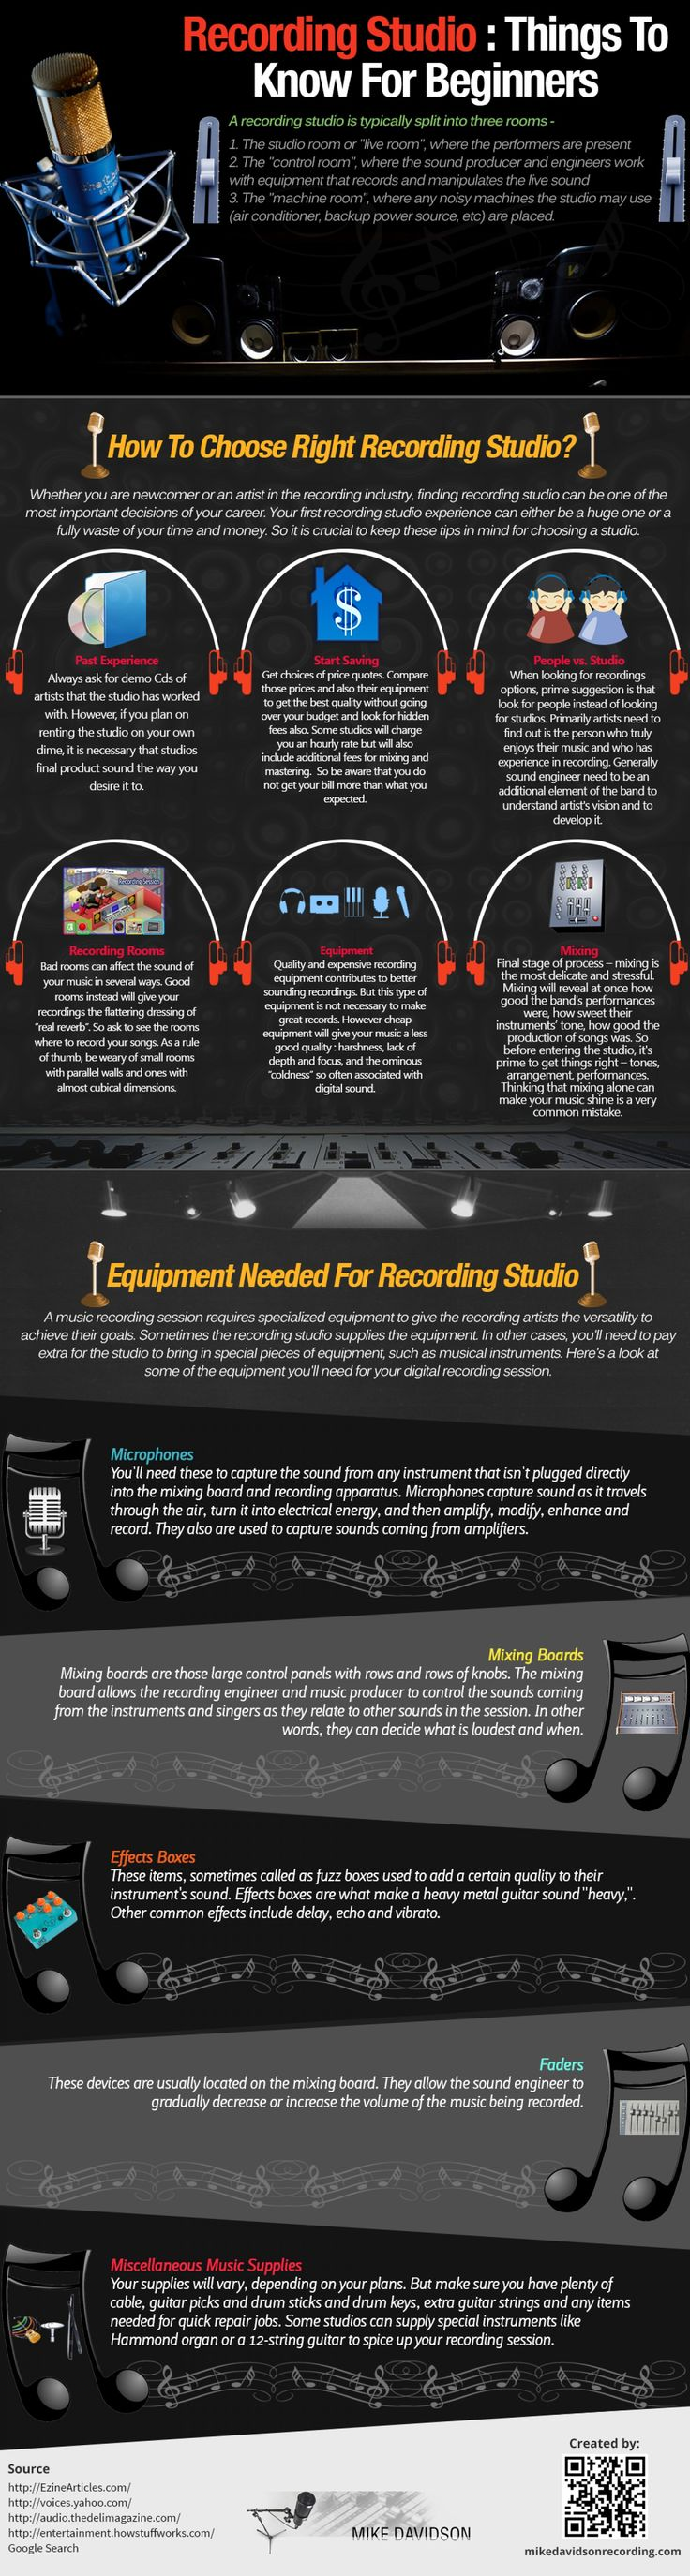 Recording Studio : Things To Know For Beginners